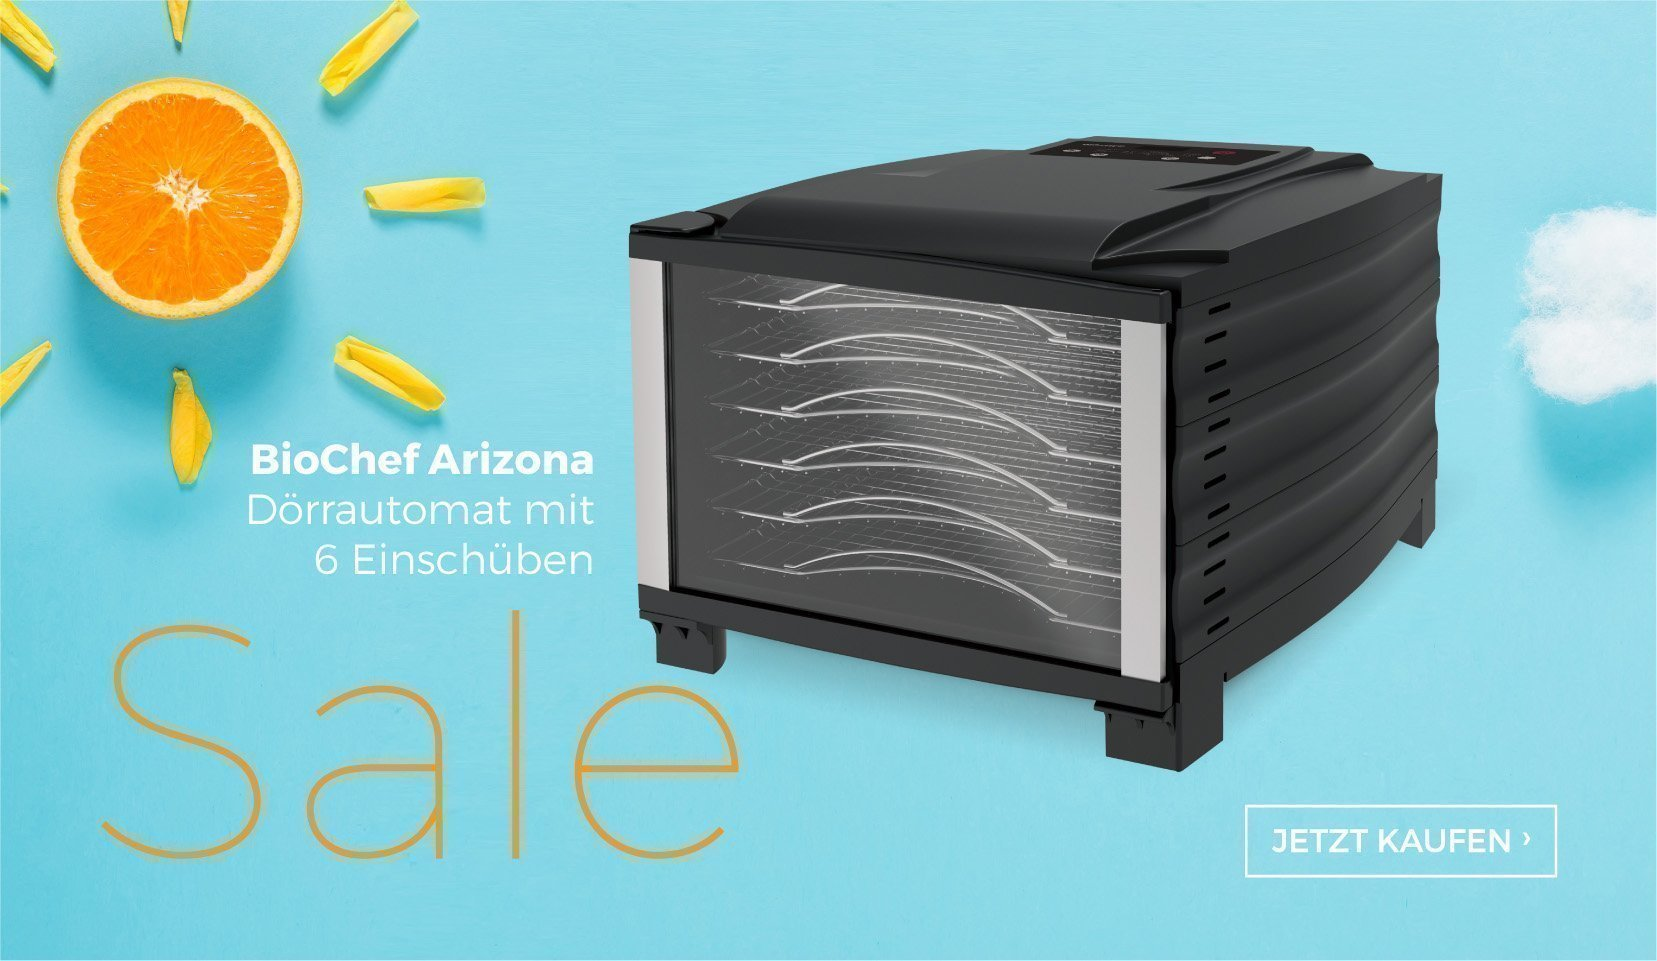 v4l-summer-sale-2019-DE-arizona-6T